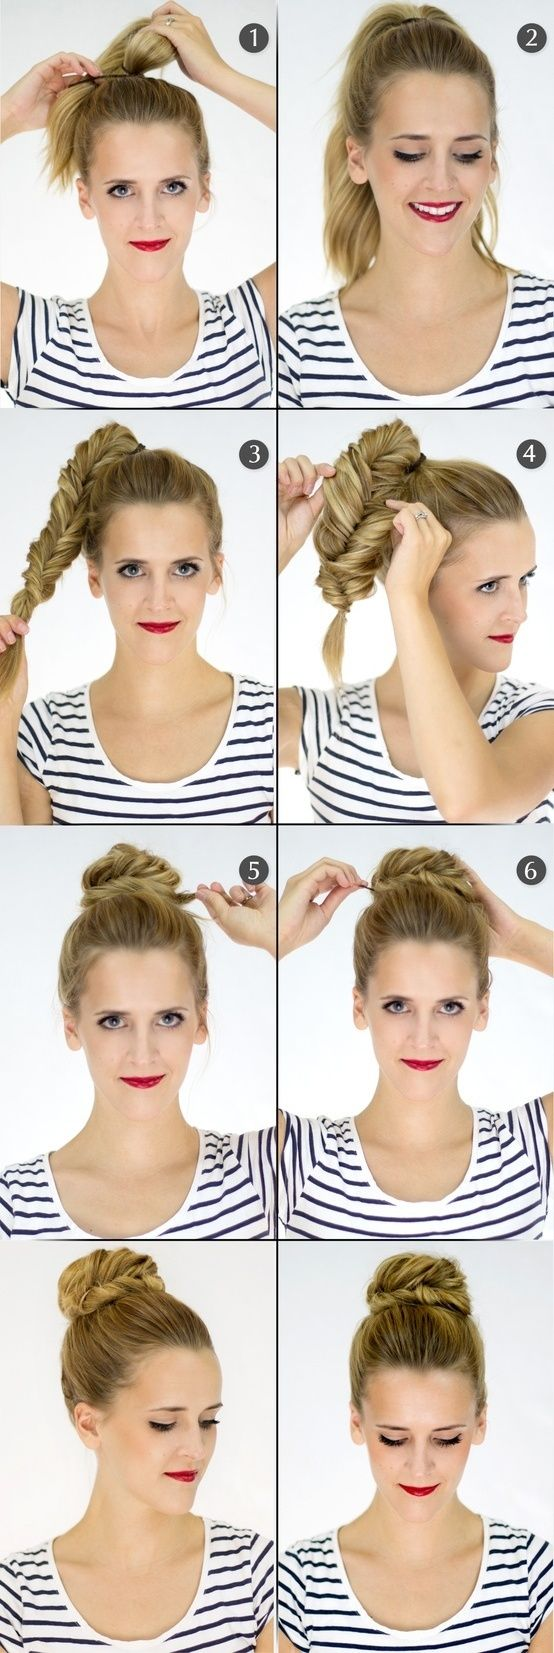 Cute And Chic Hairstyles For Humid Weather Hair Styles Long Hair Styles Hair Beauty